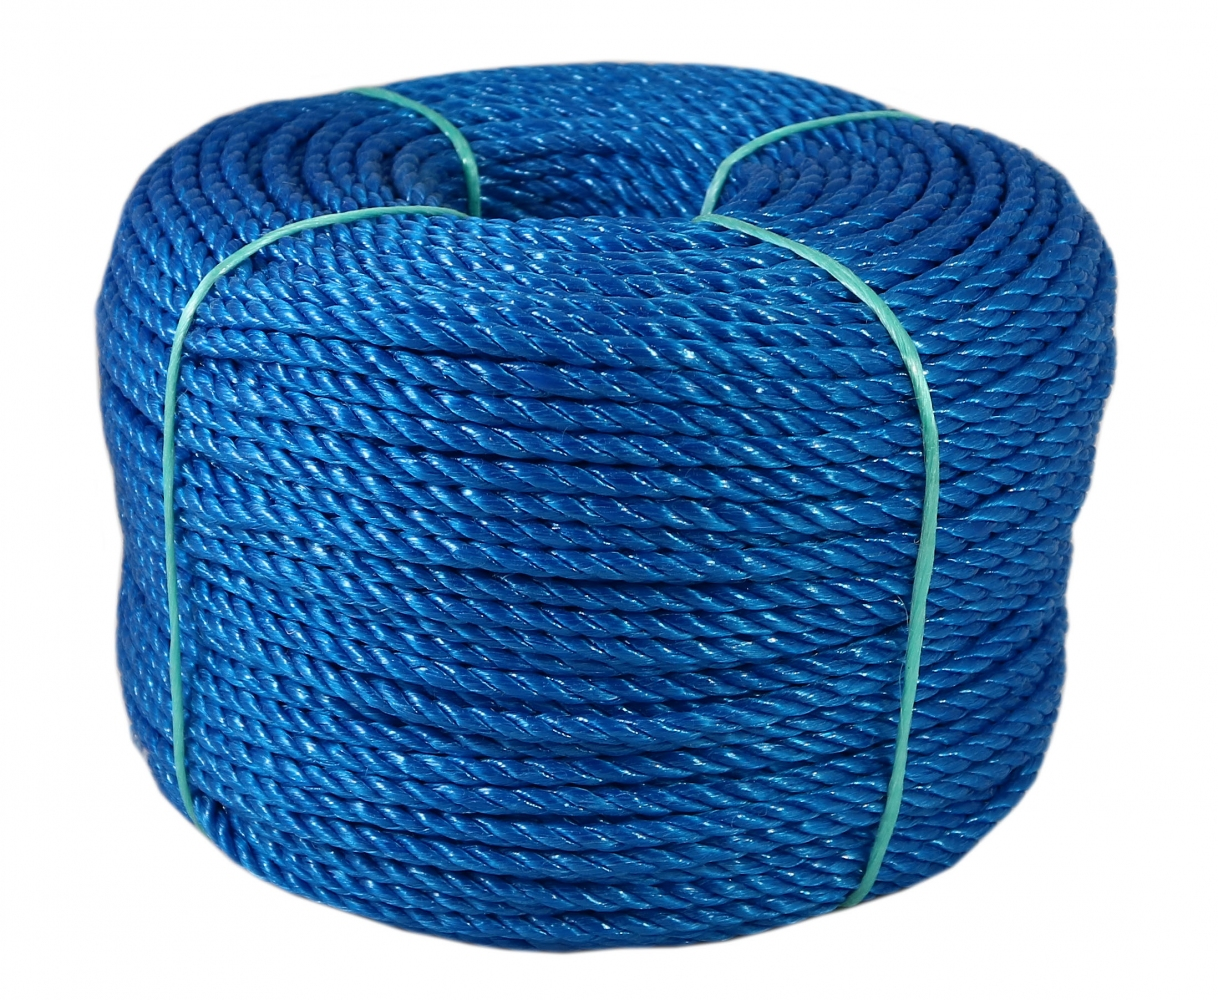 Polypropylene cord blue, diameter 5mm, 200 meters